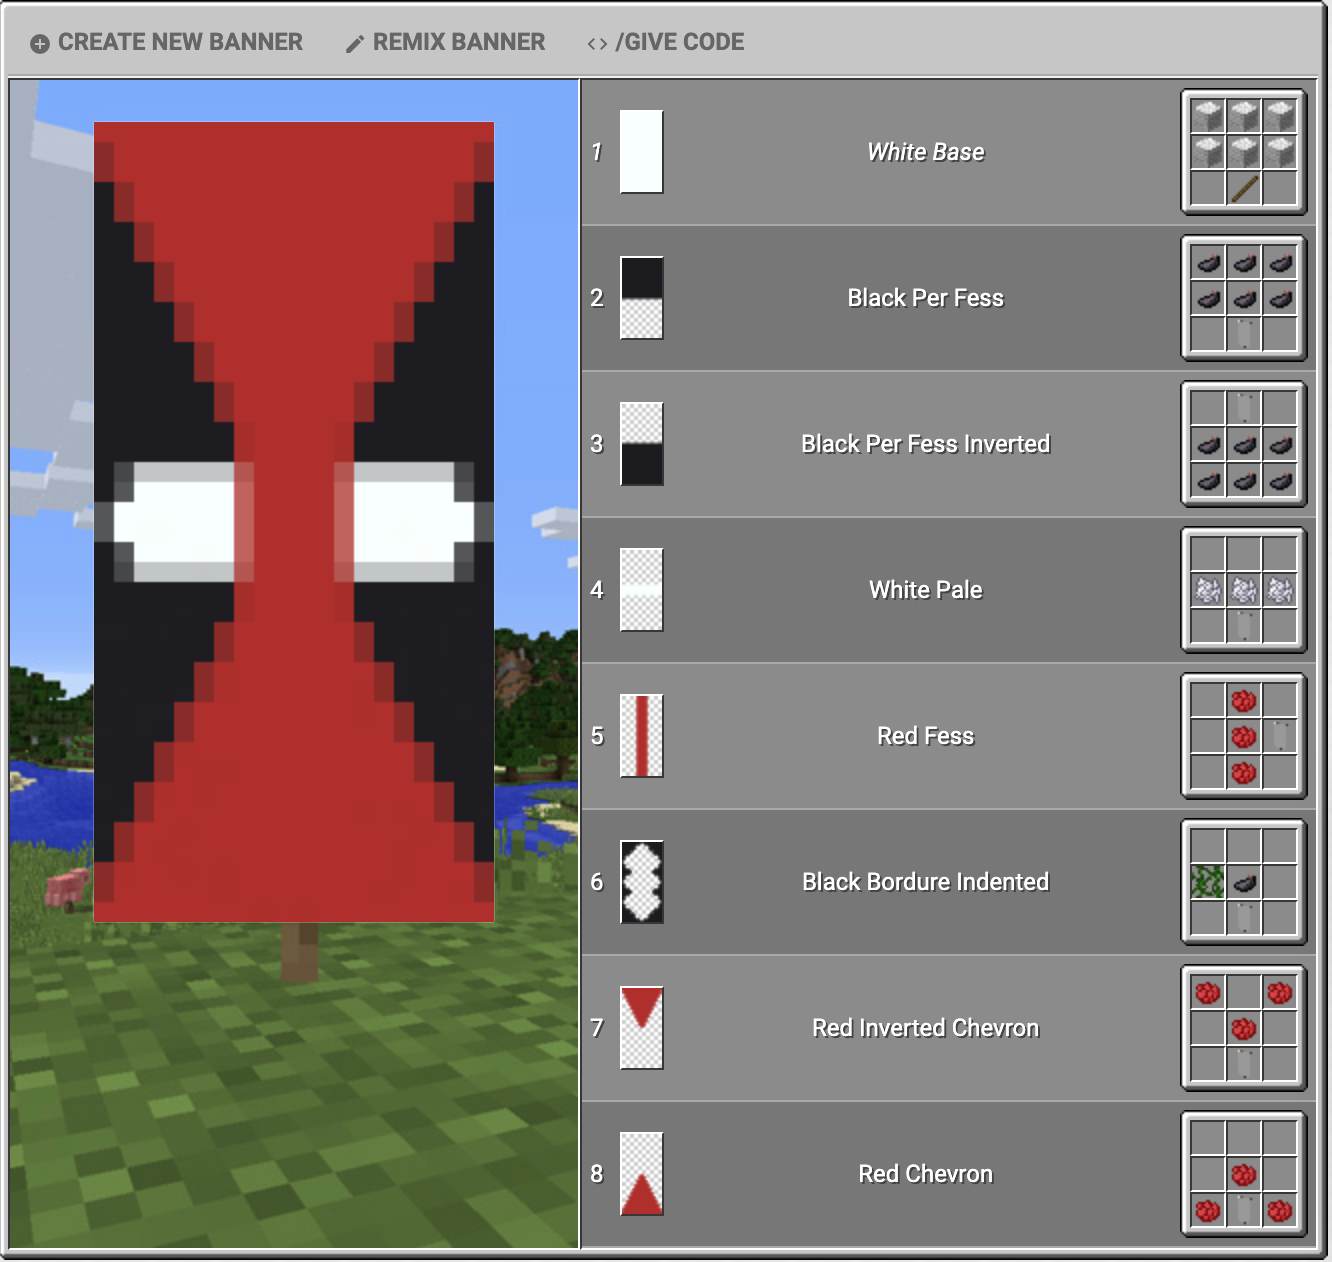 deadpool | Minecraft banner designs, Minecraft projects, Minecraft banners